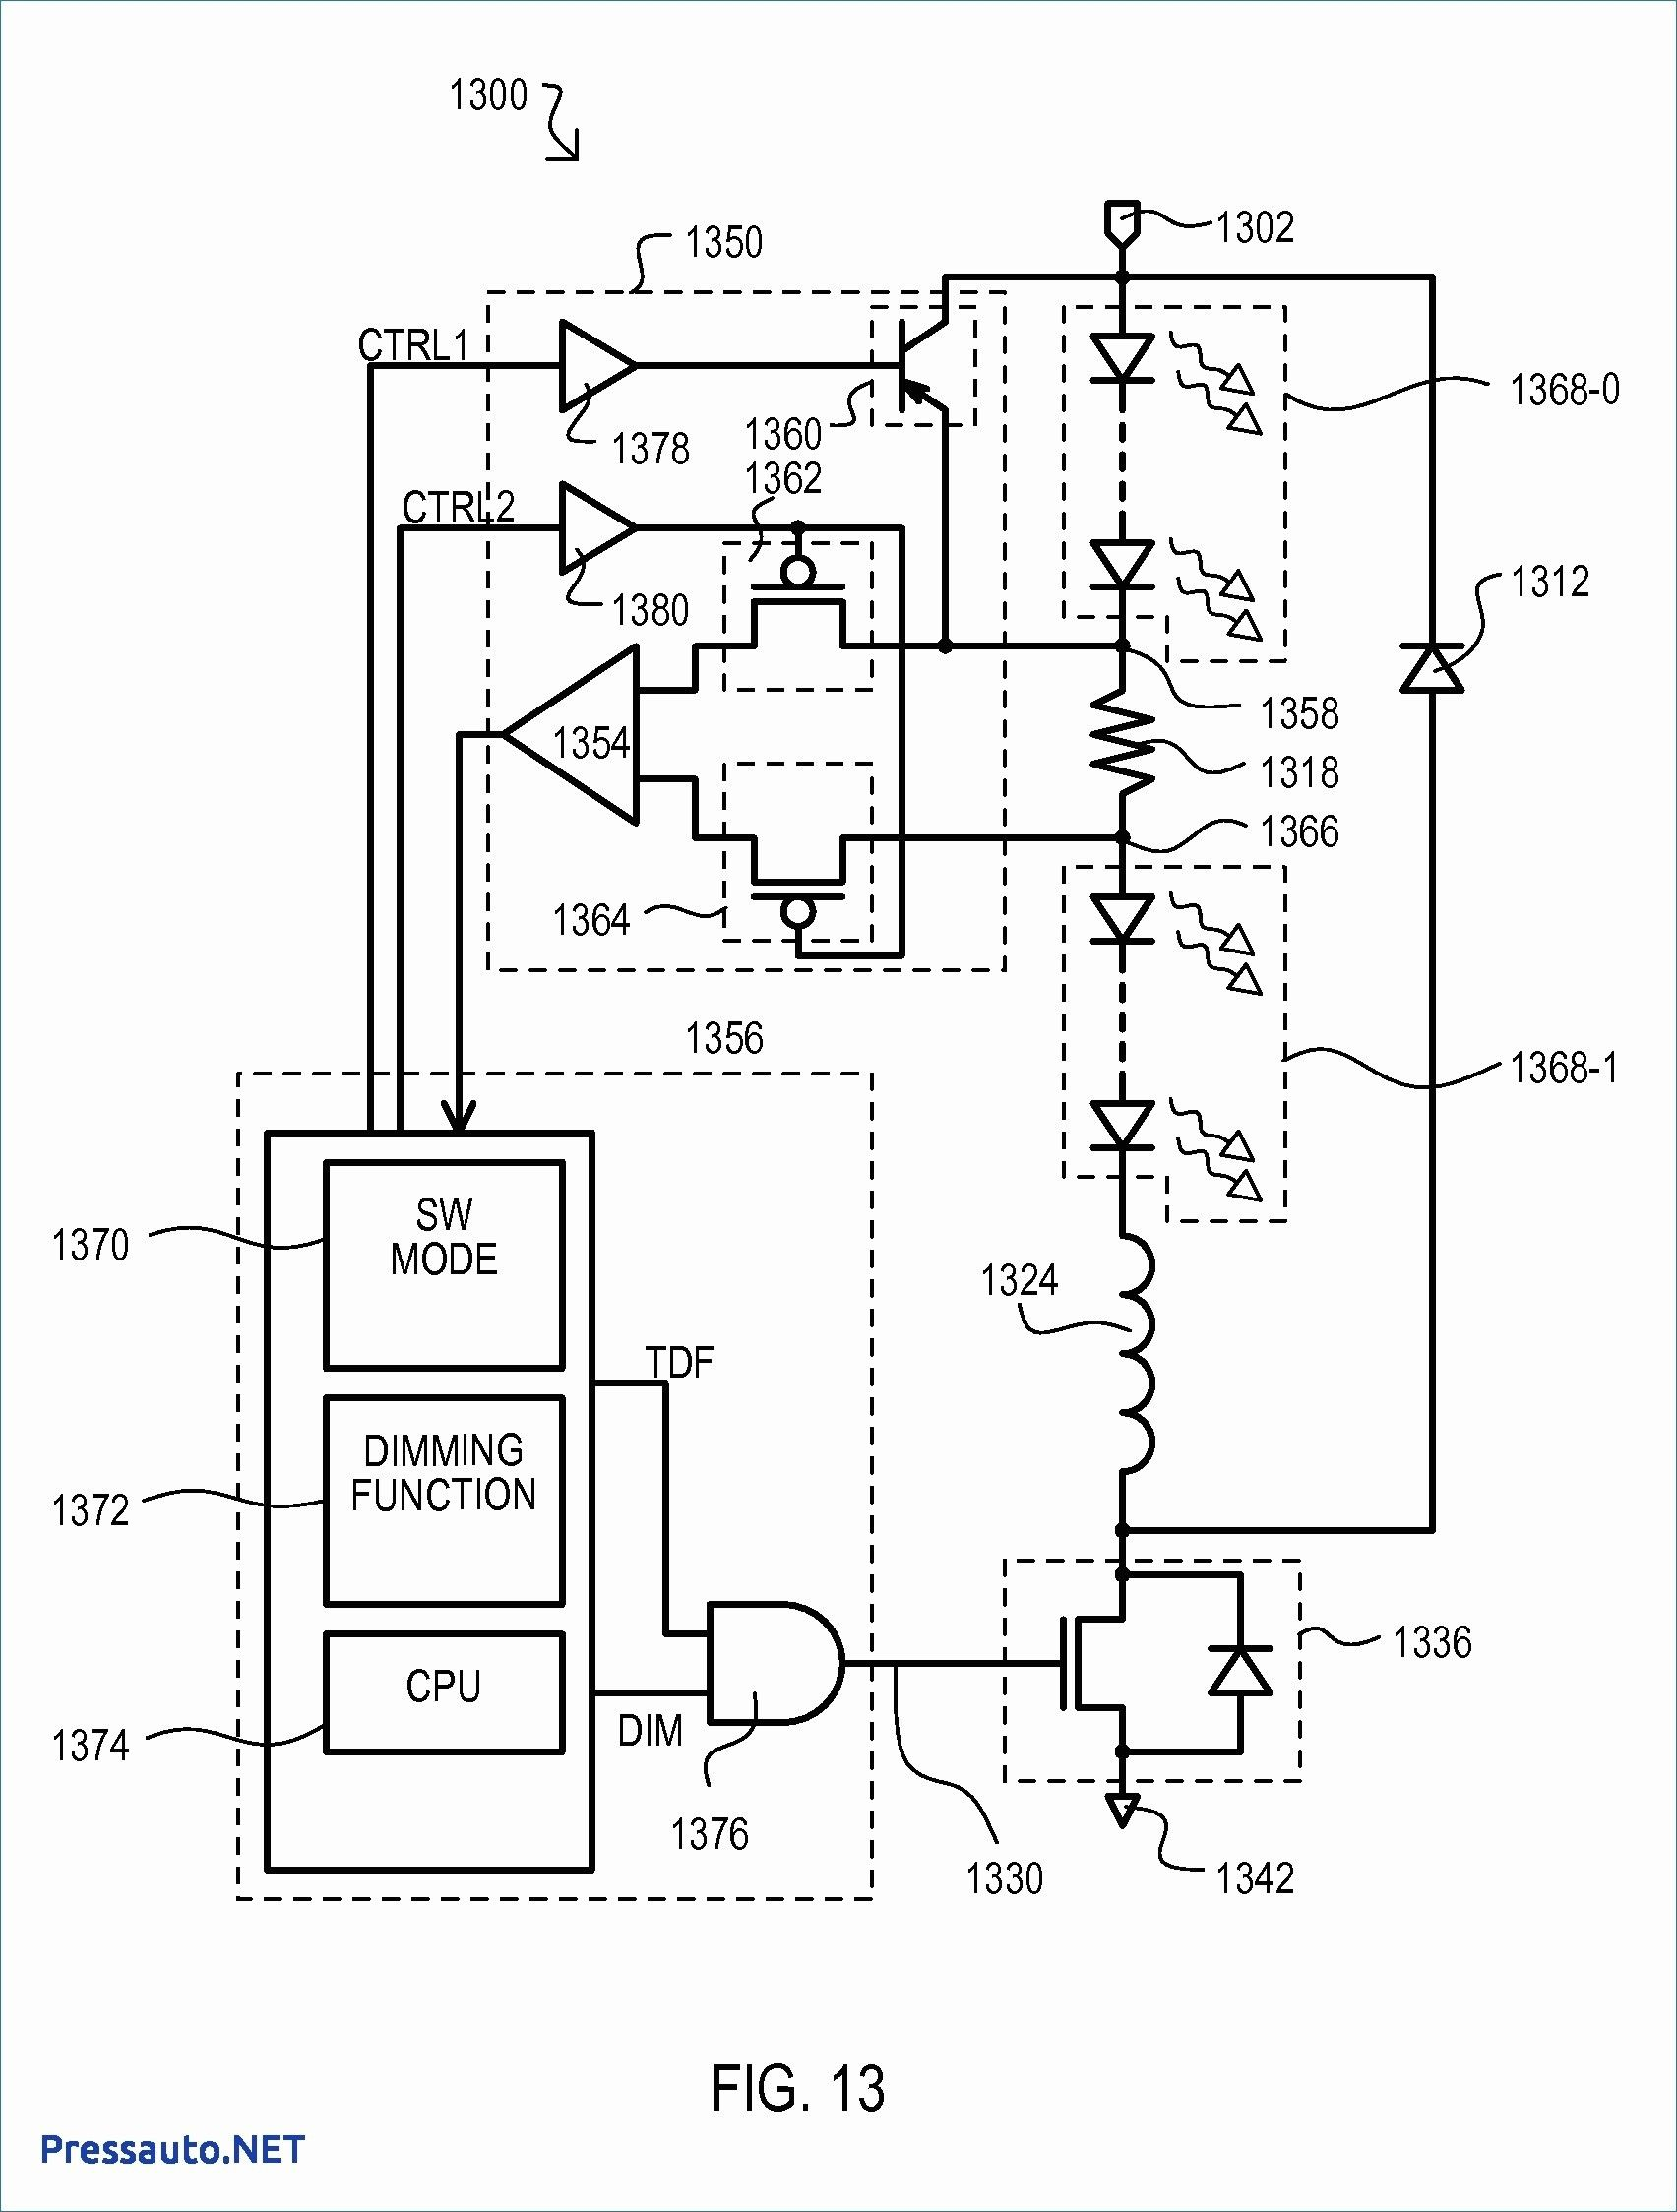 Beautiful Wiring Diagram Intermediate Light Switch #